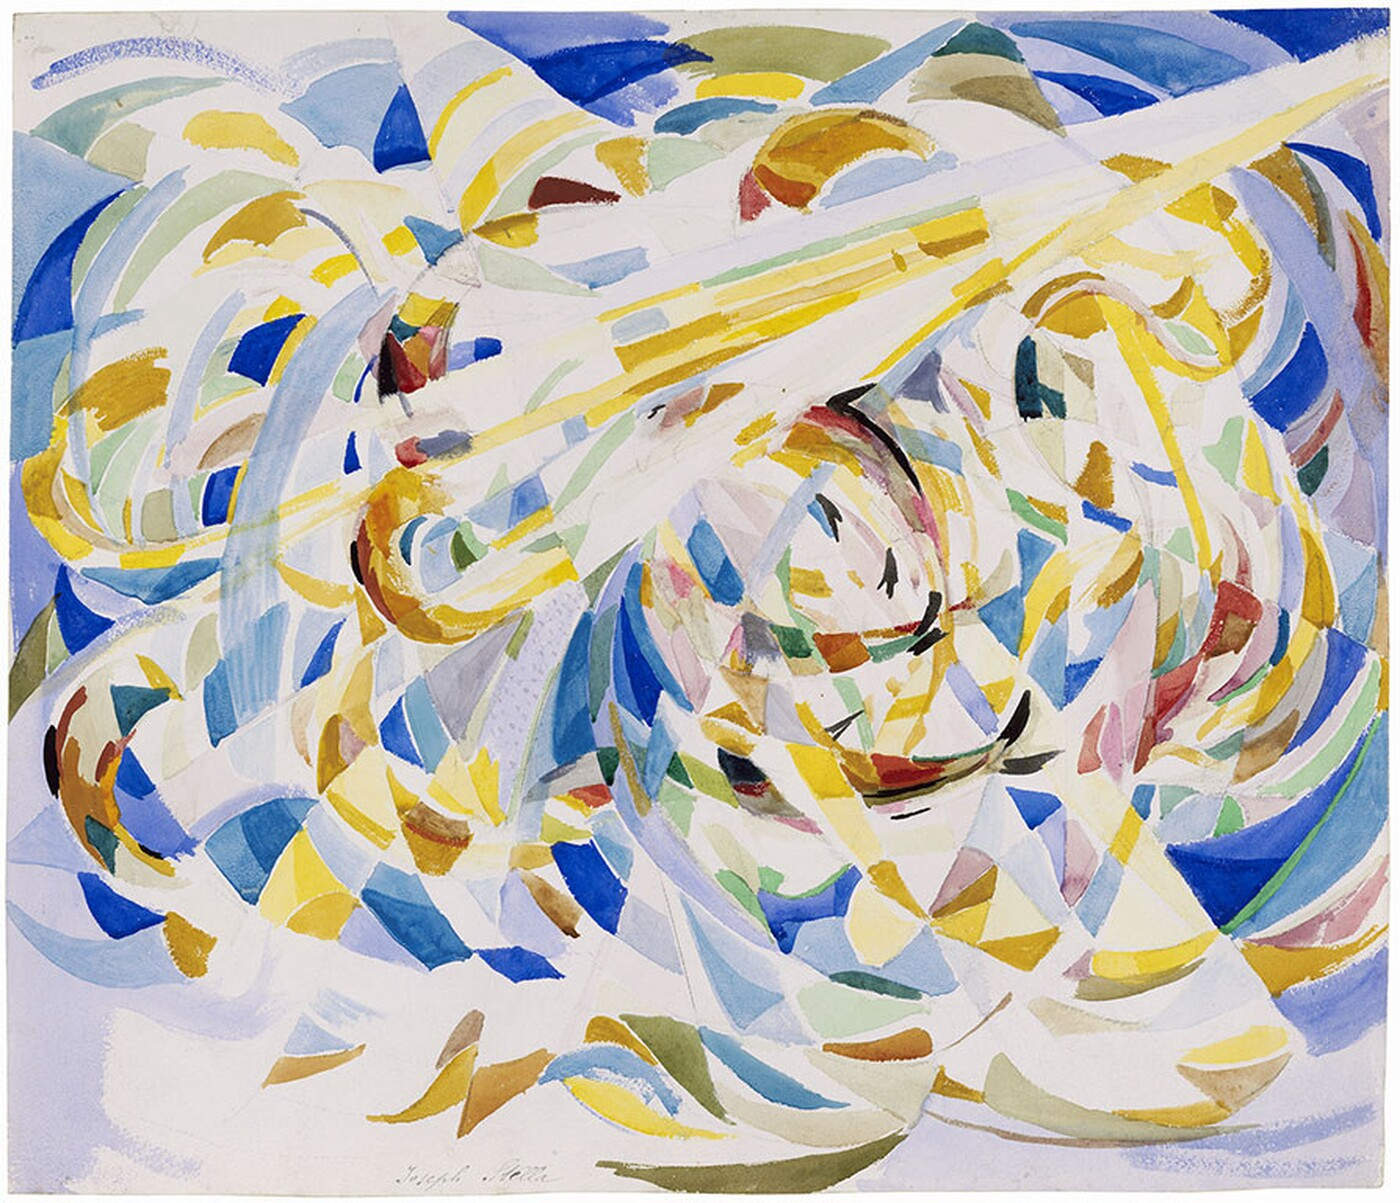 Watercolor painting featuring gold, blue, red, and white swirls across the entire canvas.